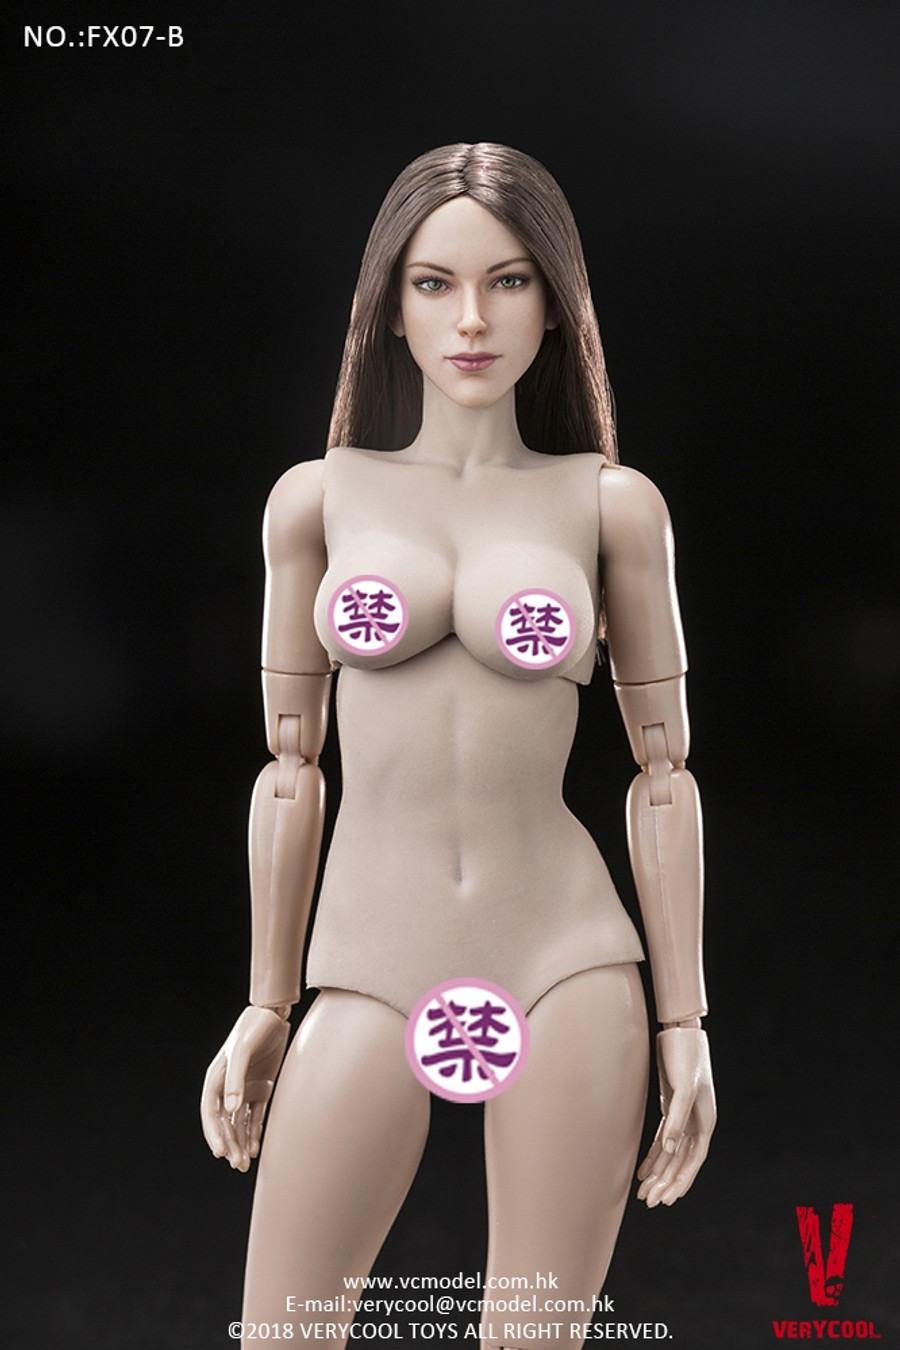 Very Cool - Supermodel Head Sculpt and Female Body Set - Brown Straight Hair